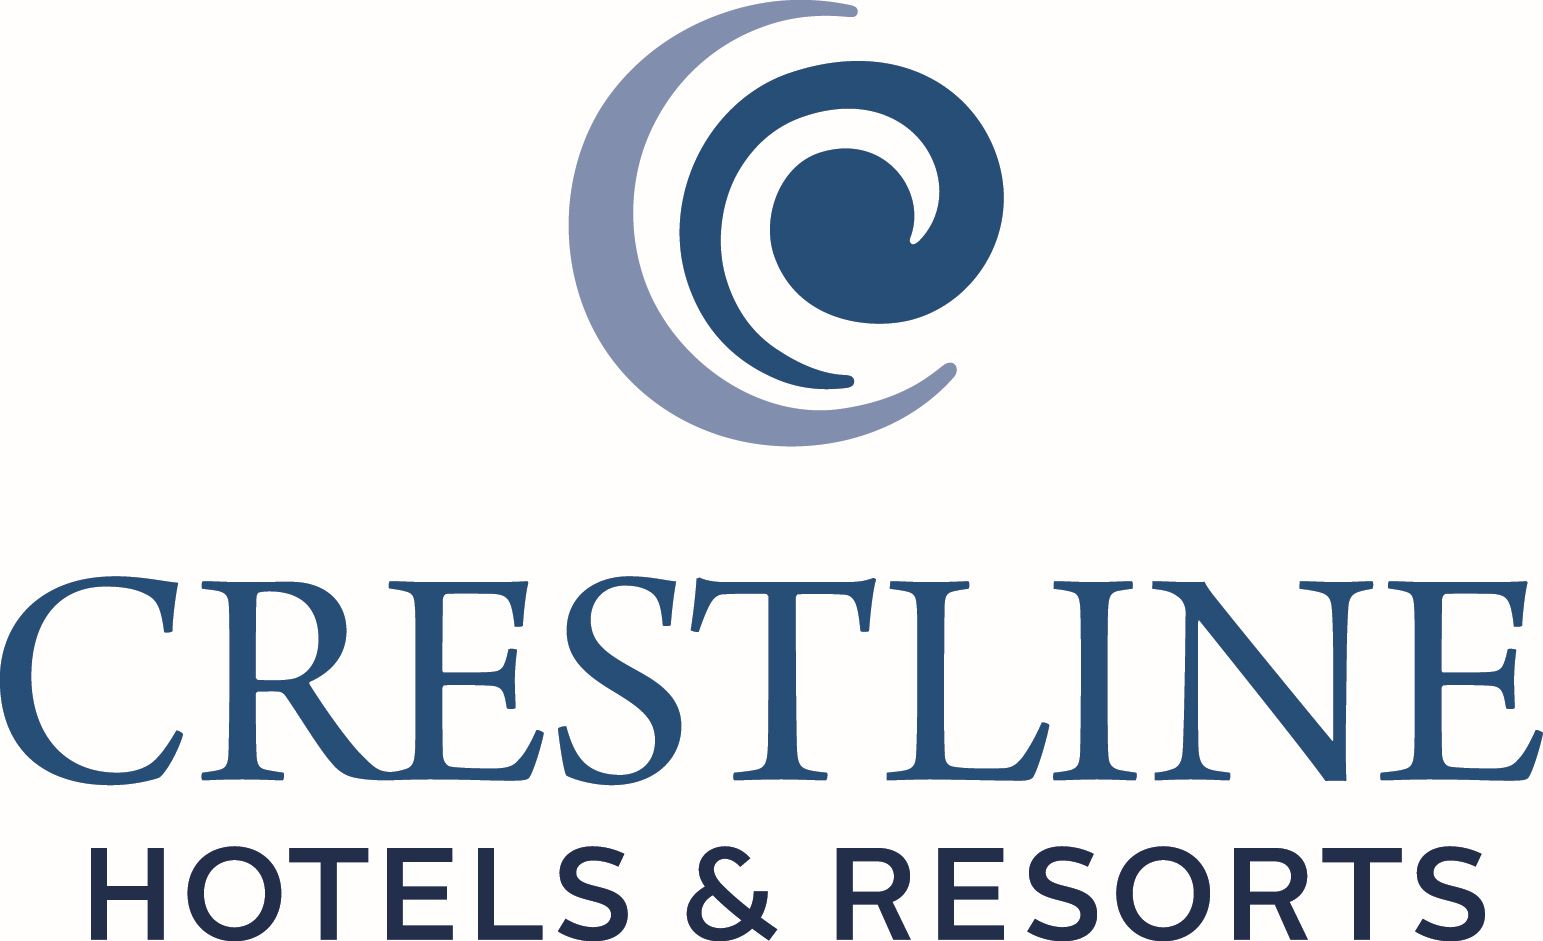 Crestline Hotels & Resorts Logo